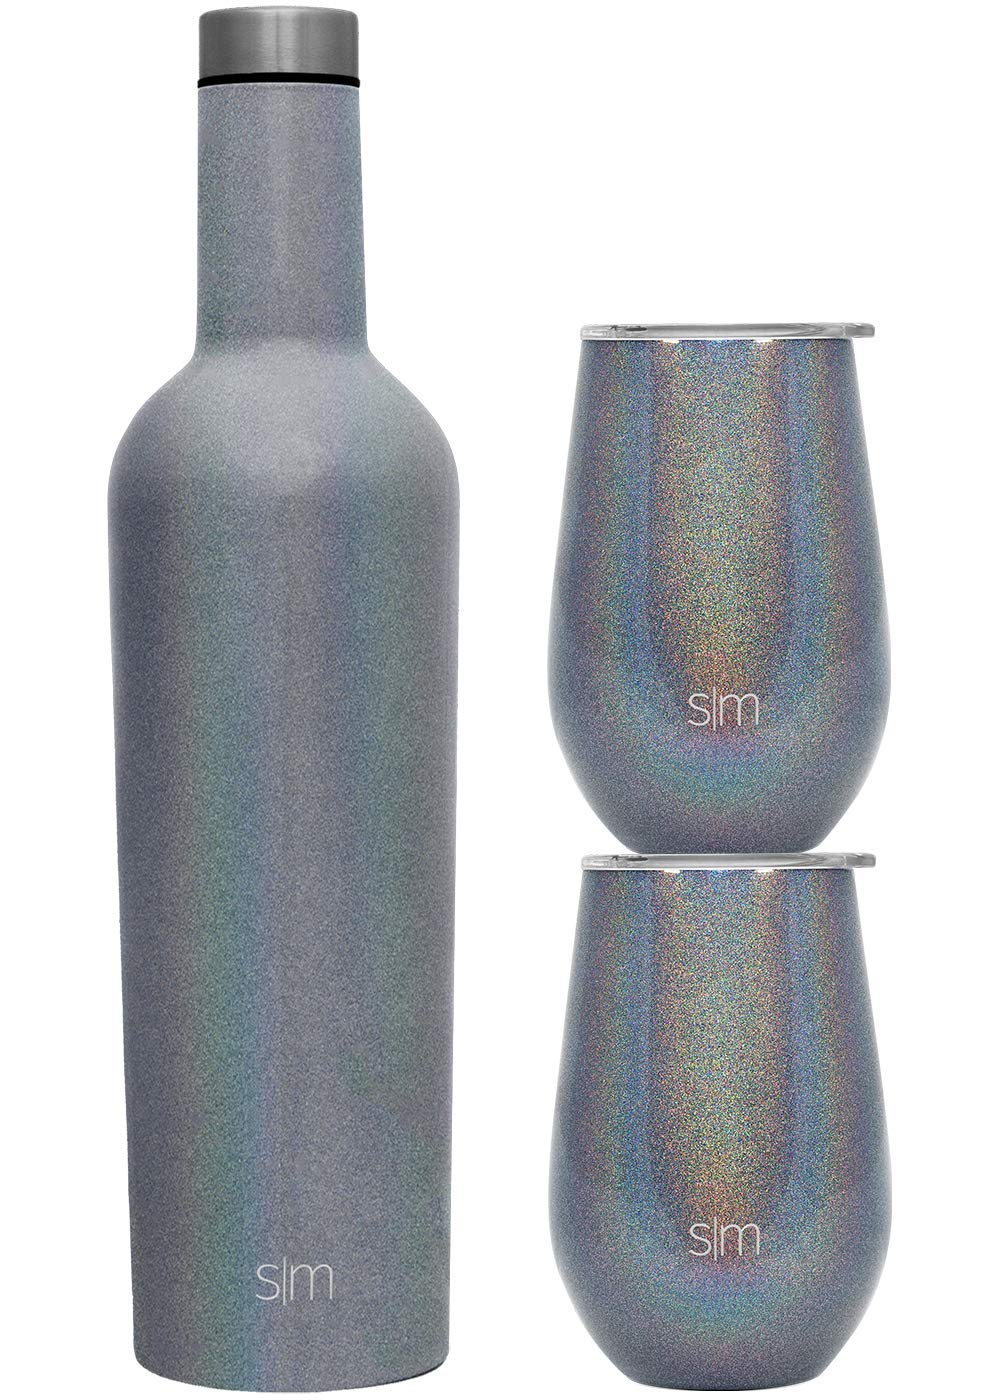 Simple Modern Spirit Wine Bundle - 2 12oz Wine Tumbler Glasses with Lids & 1 Wine Bottle - Vacuum Insulated 18/8 Stainless Steel Shimmer: Blue Moonstone